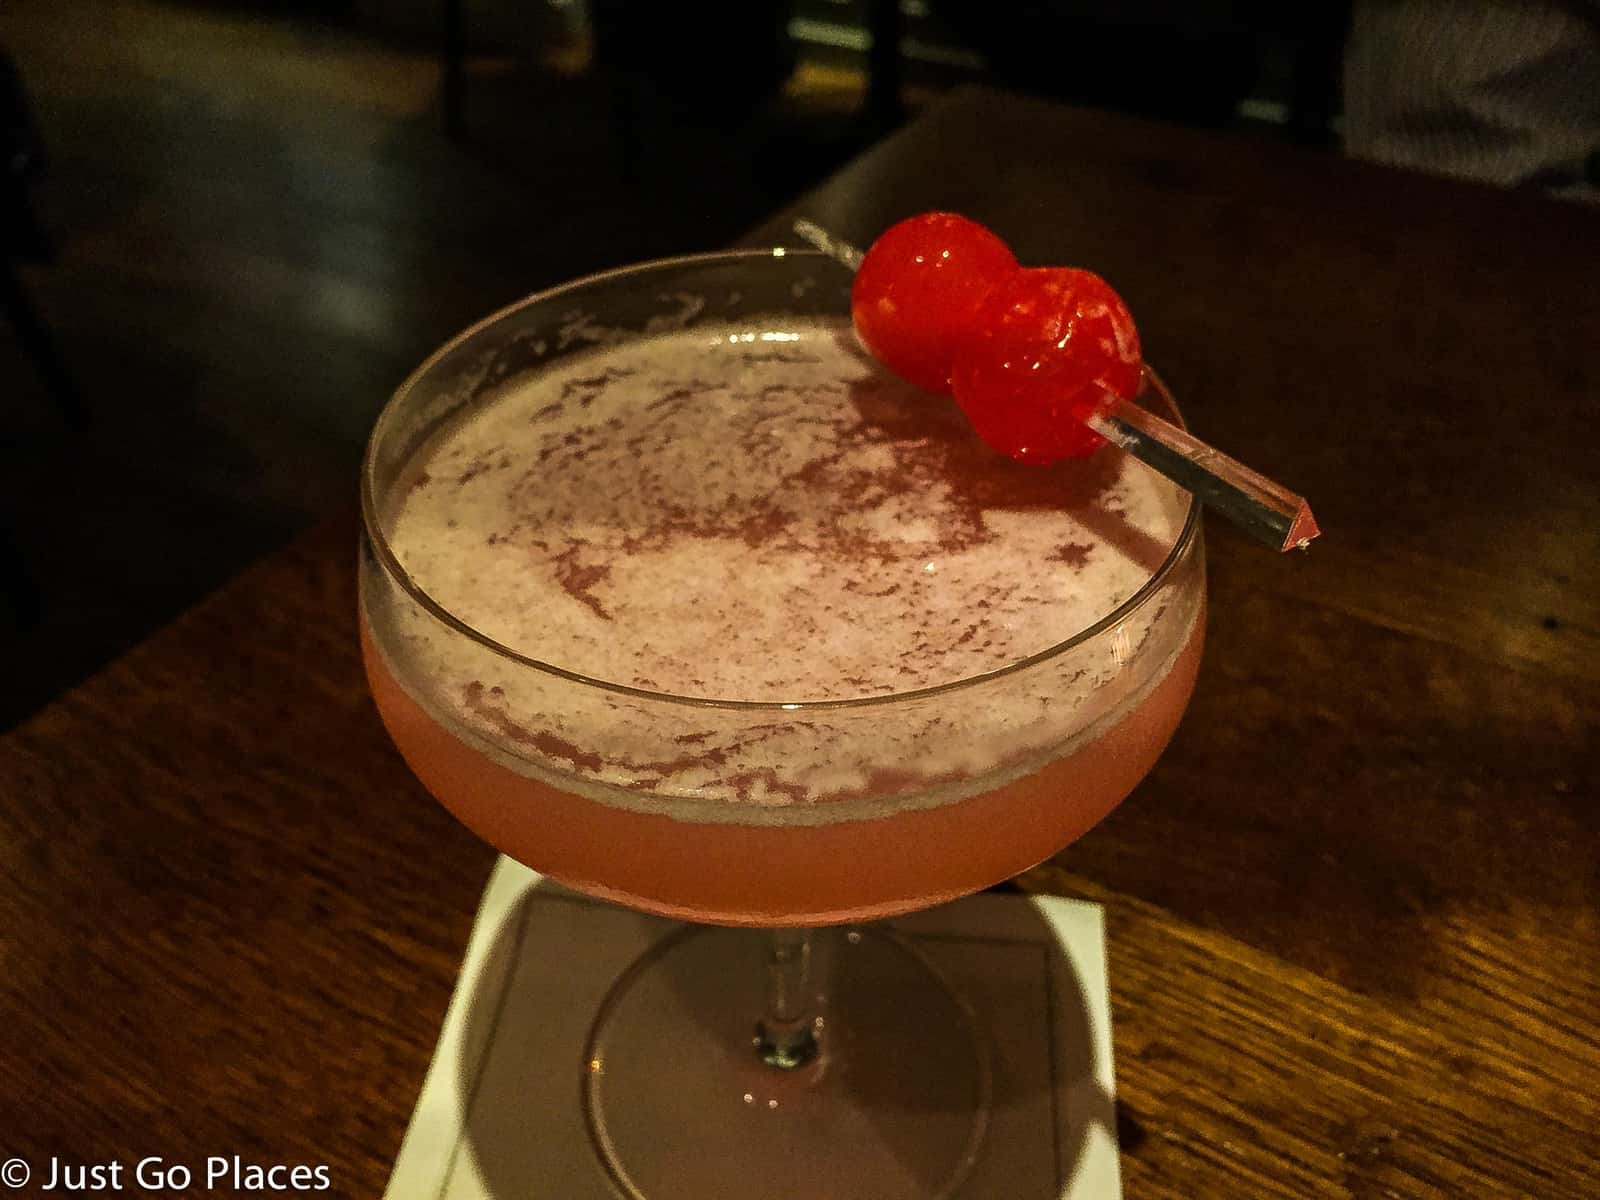 A cocktail from Trishna, a Michelin Star restaurant in Marylebone London